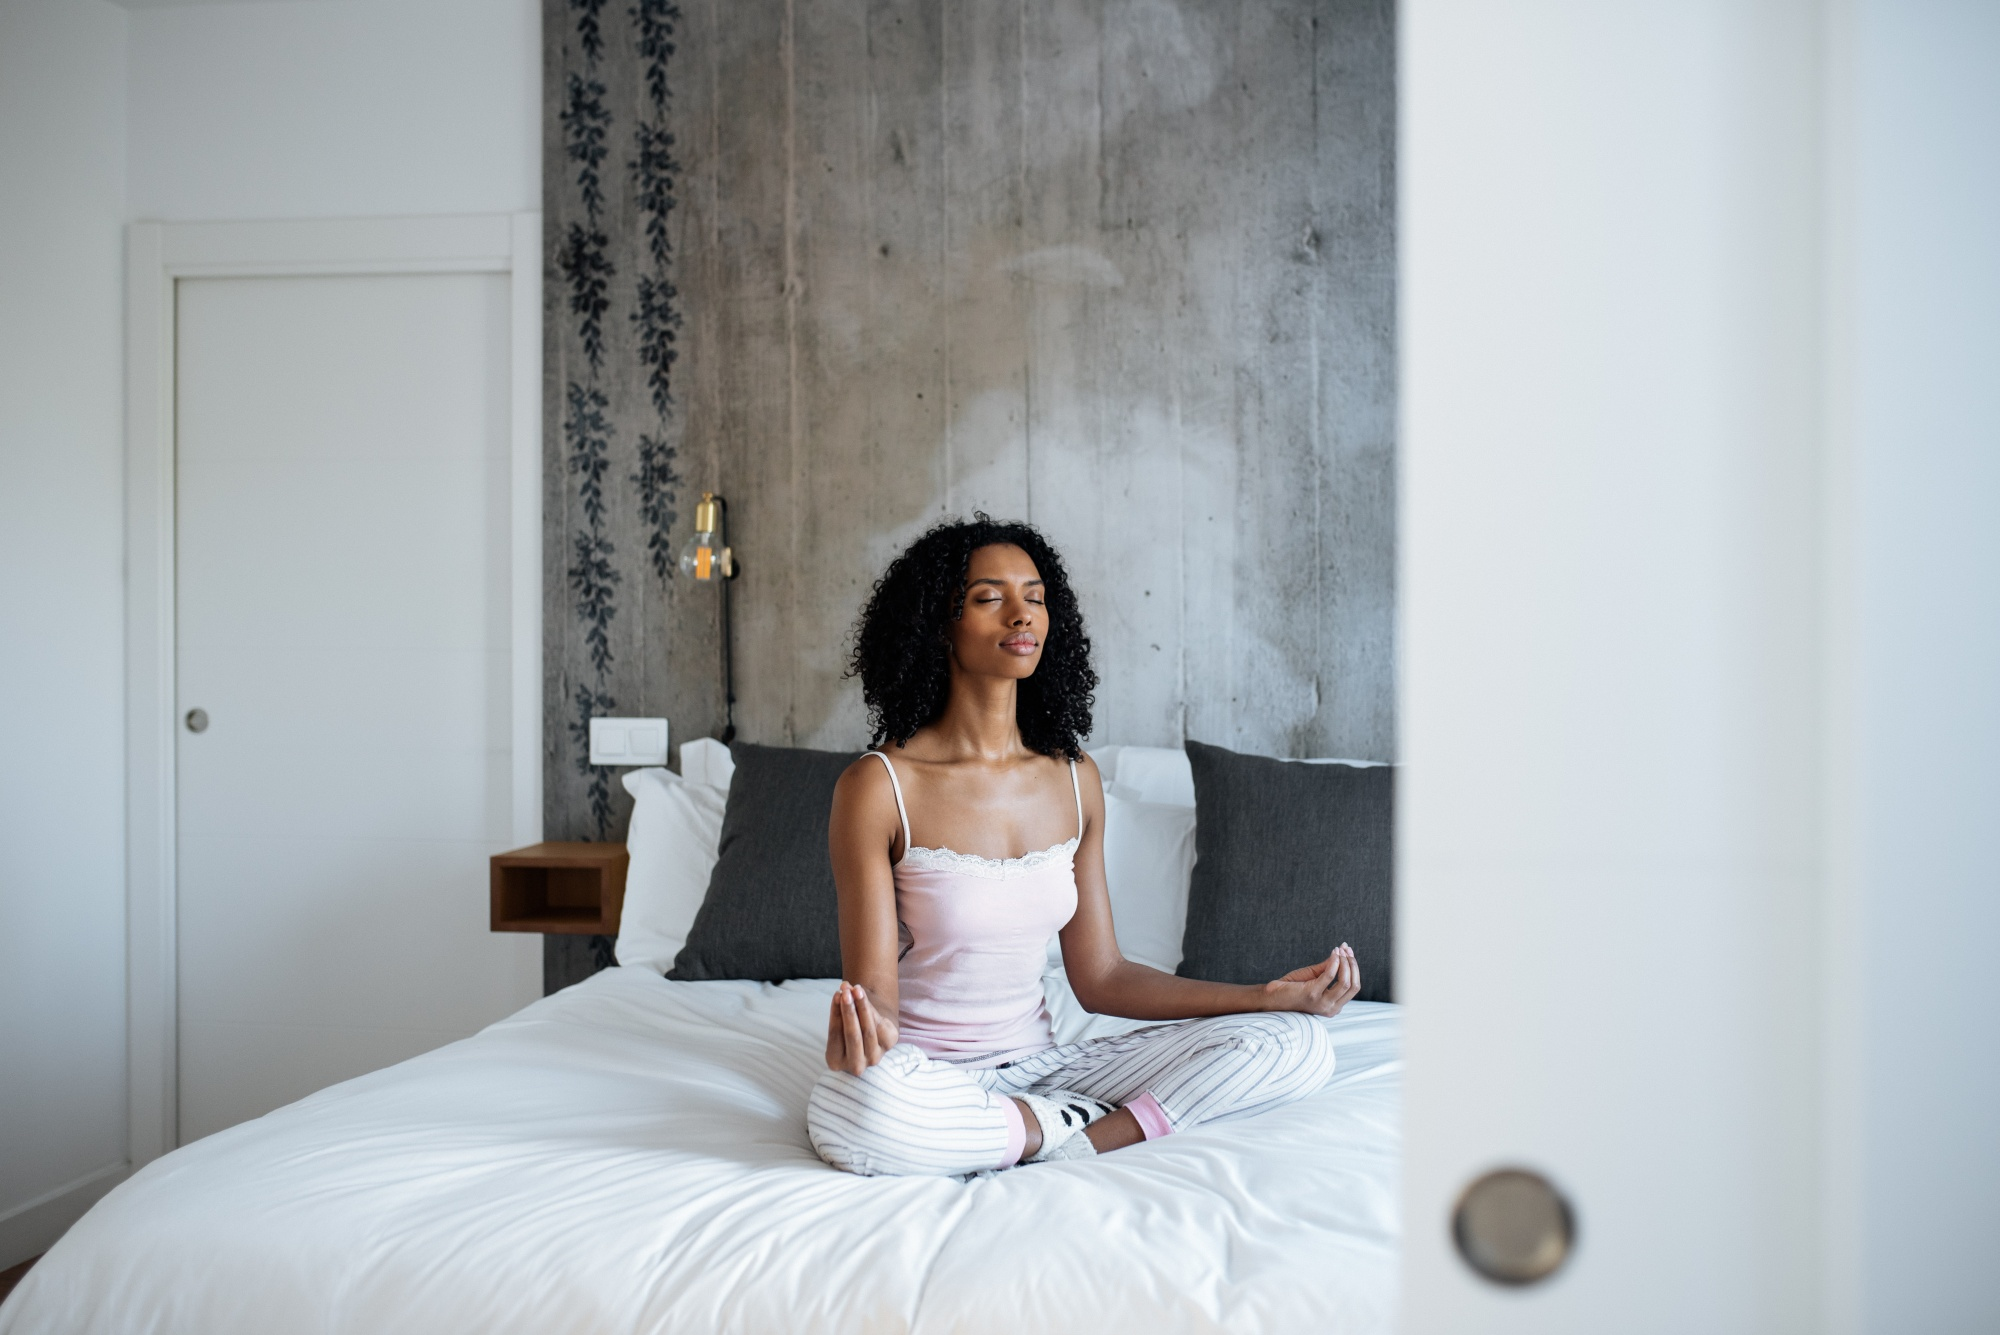 better sex after menopause, Attractive black woman sitting in lotus position on bed meditating